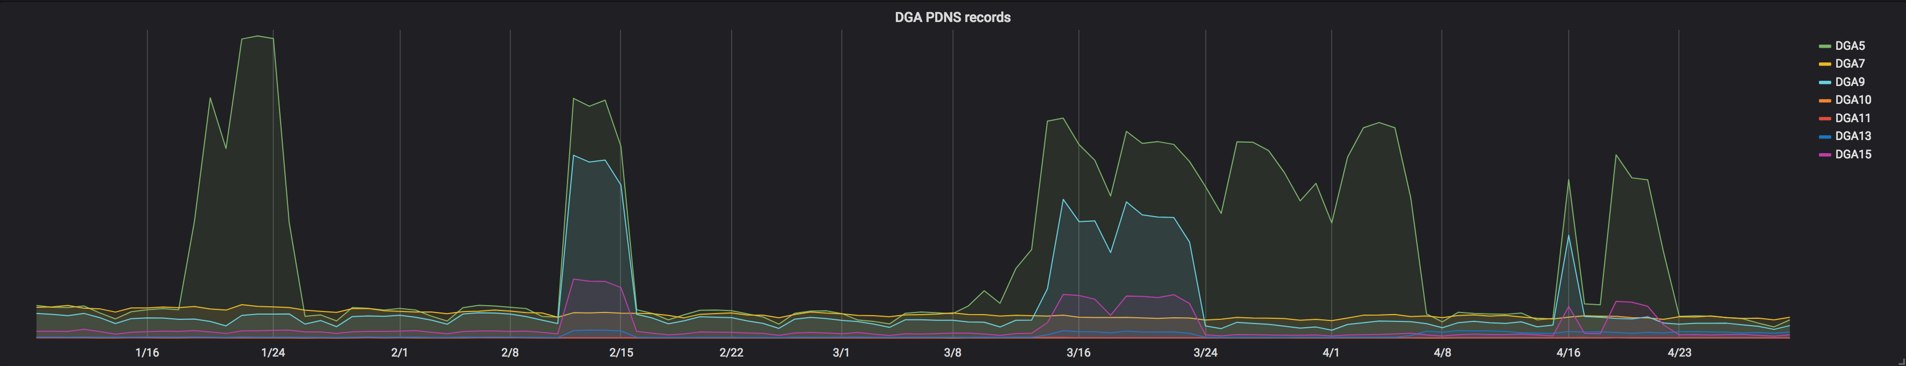 Picture2_DGA PDNS Records.png